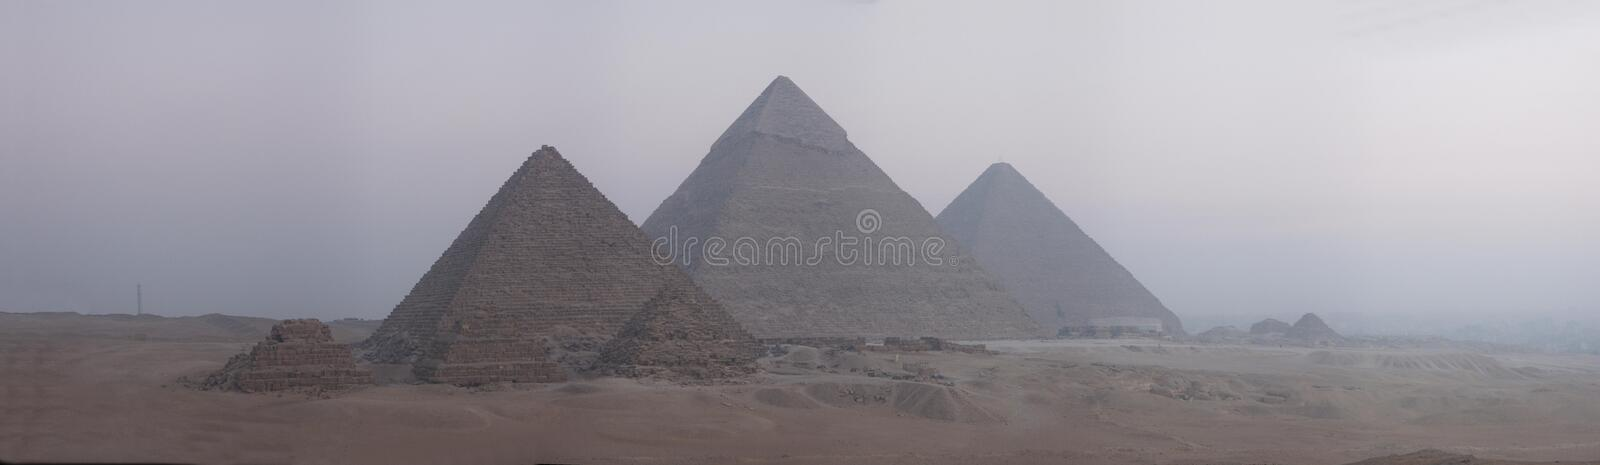 Pyramids panorama 5000 pixels wide. Large sized panorama image of the Gizeh Plateau near Cairo. Pyramids of Cheops, Chefren and Mycerinus at sunrise royalty free stock images